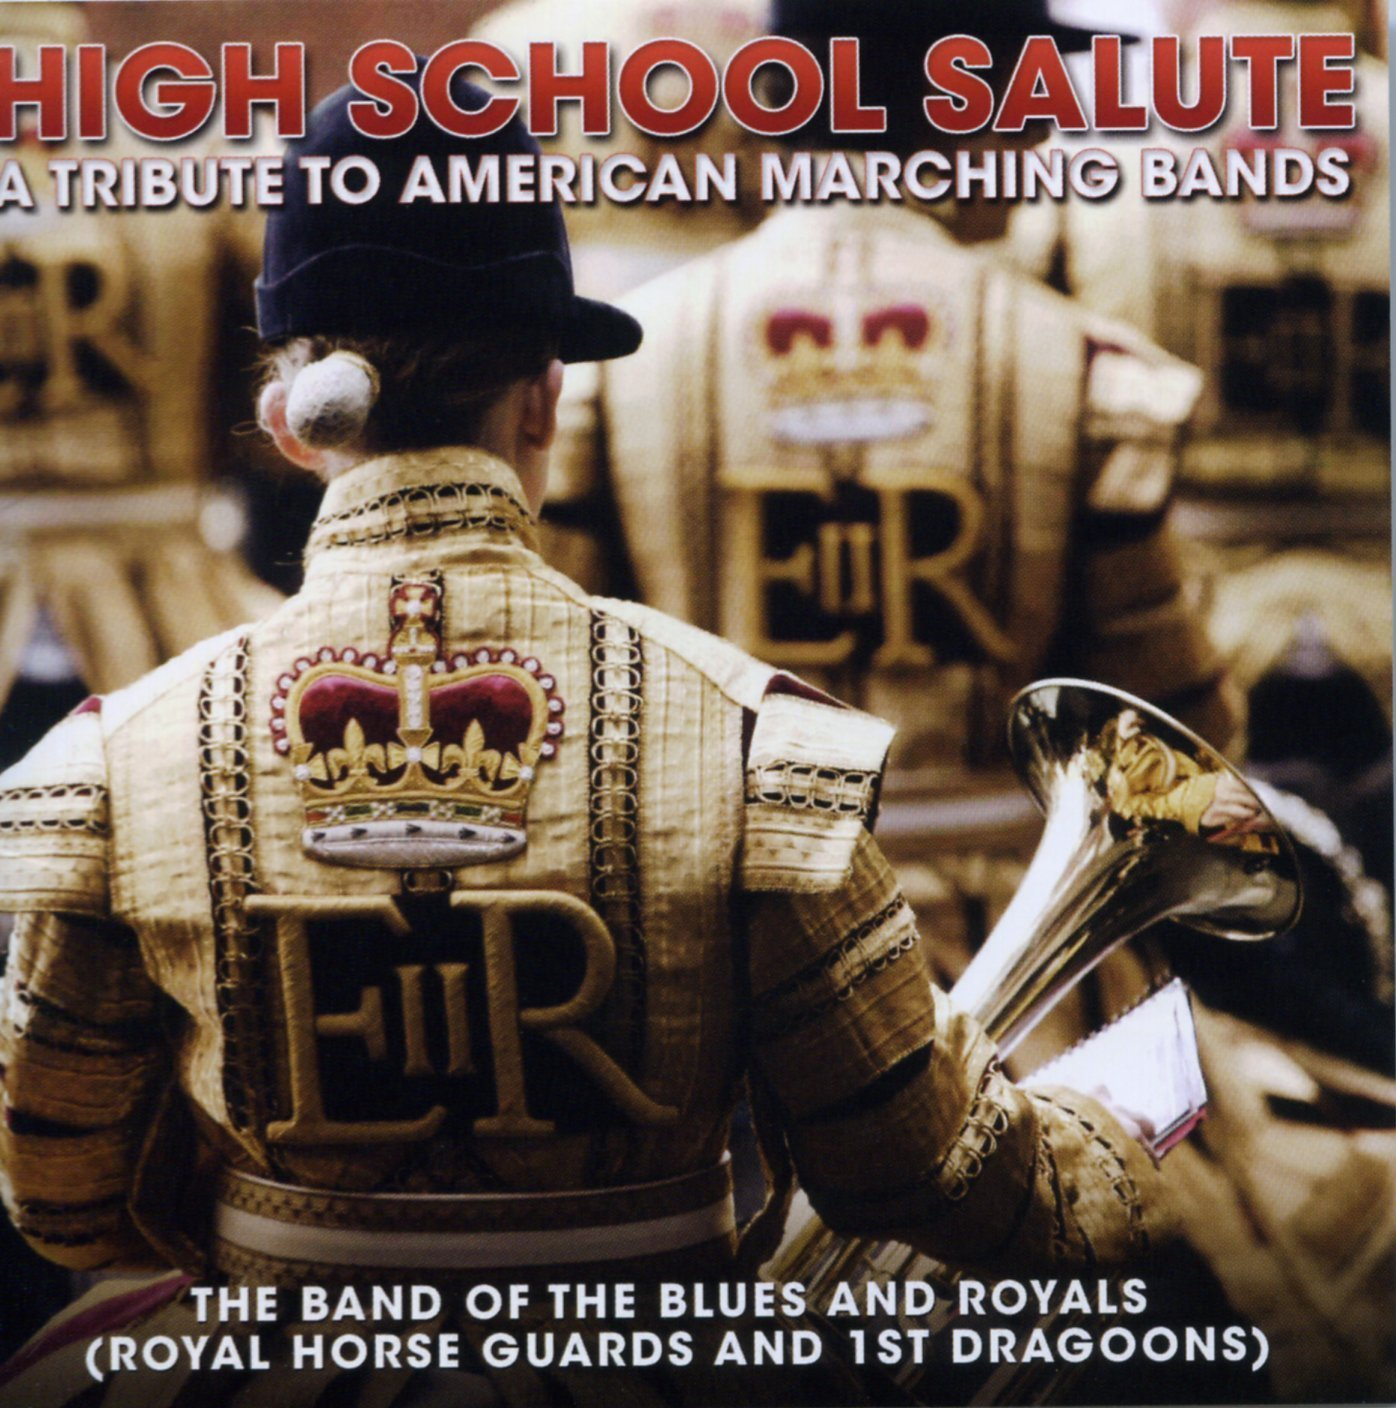 Super sale period limited High School Branded goods Salute - A Bands American Tribute to Marching